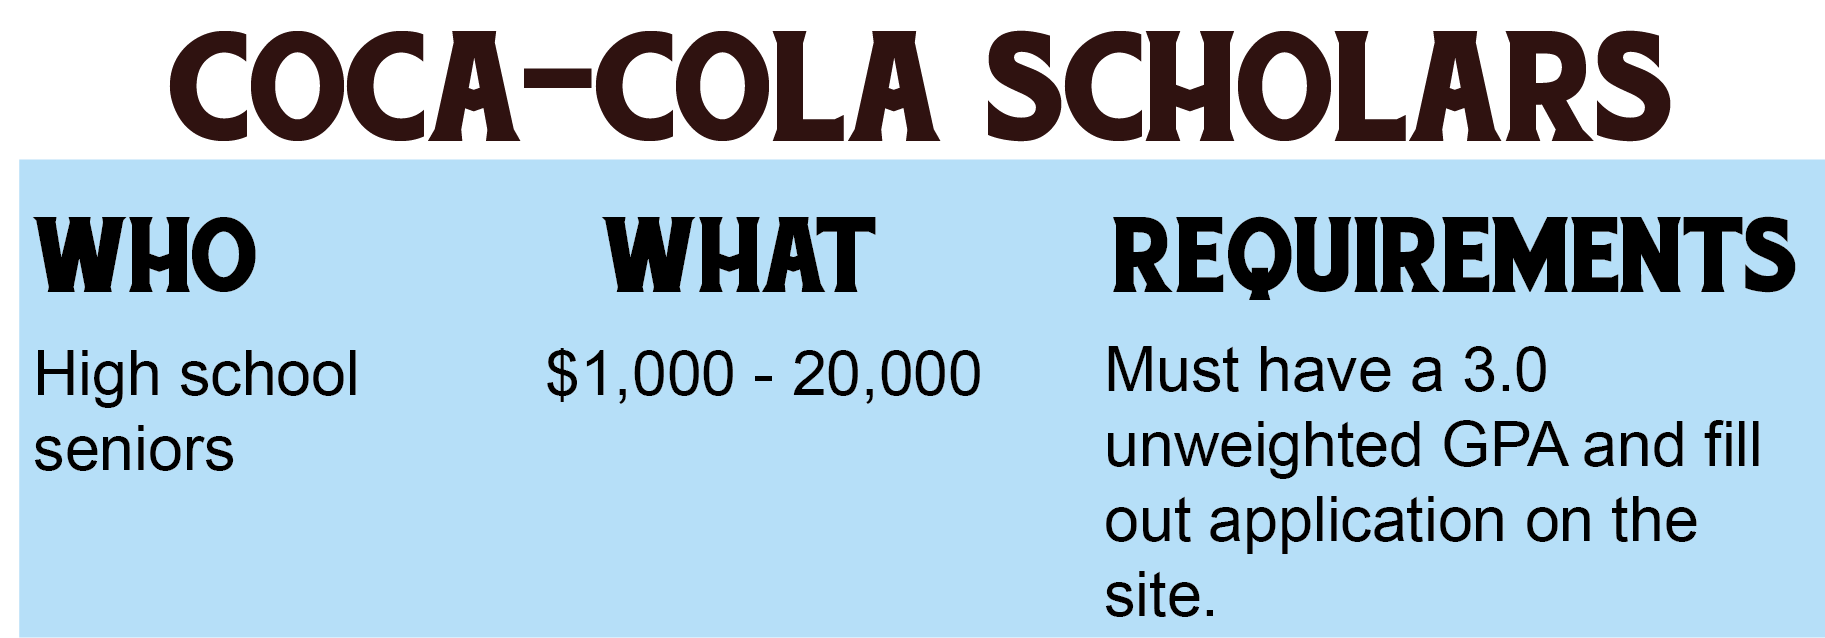 Are there essays for the Coca-Cola Scholarship?